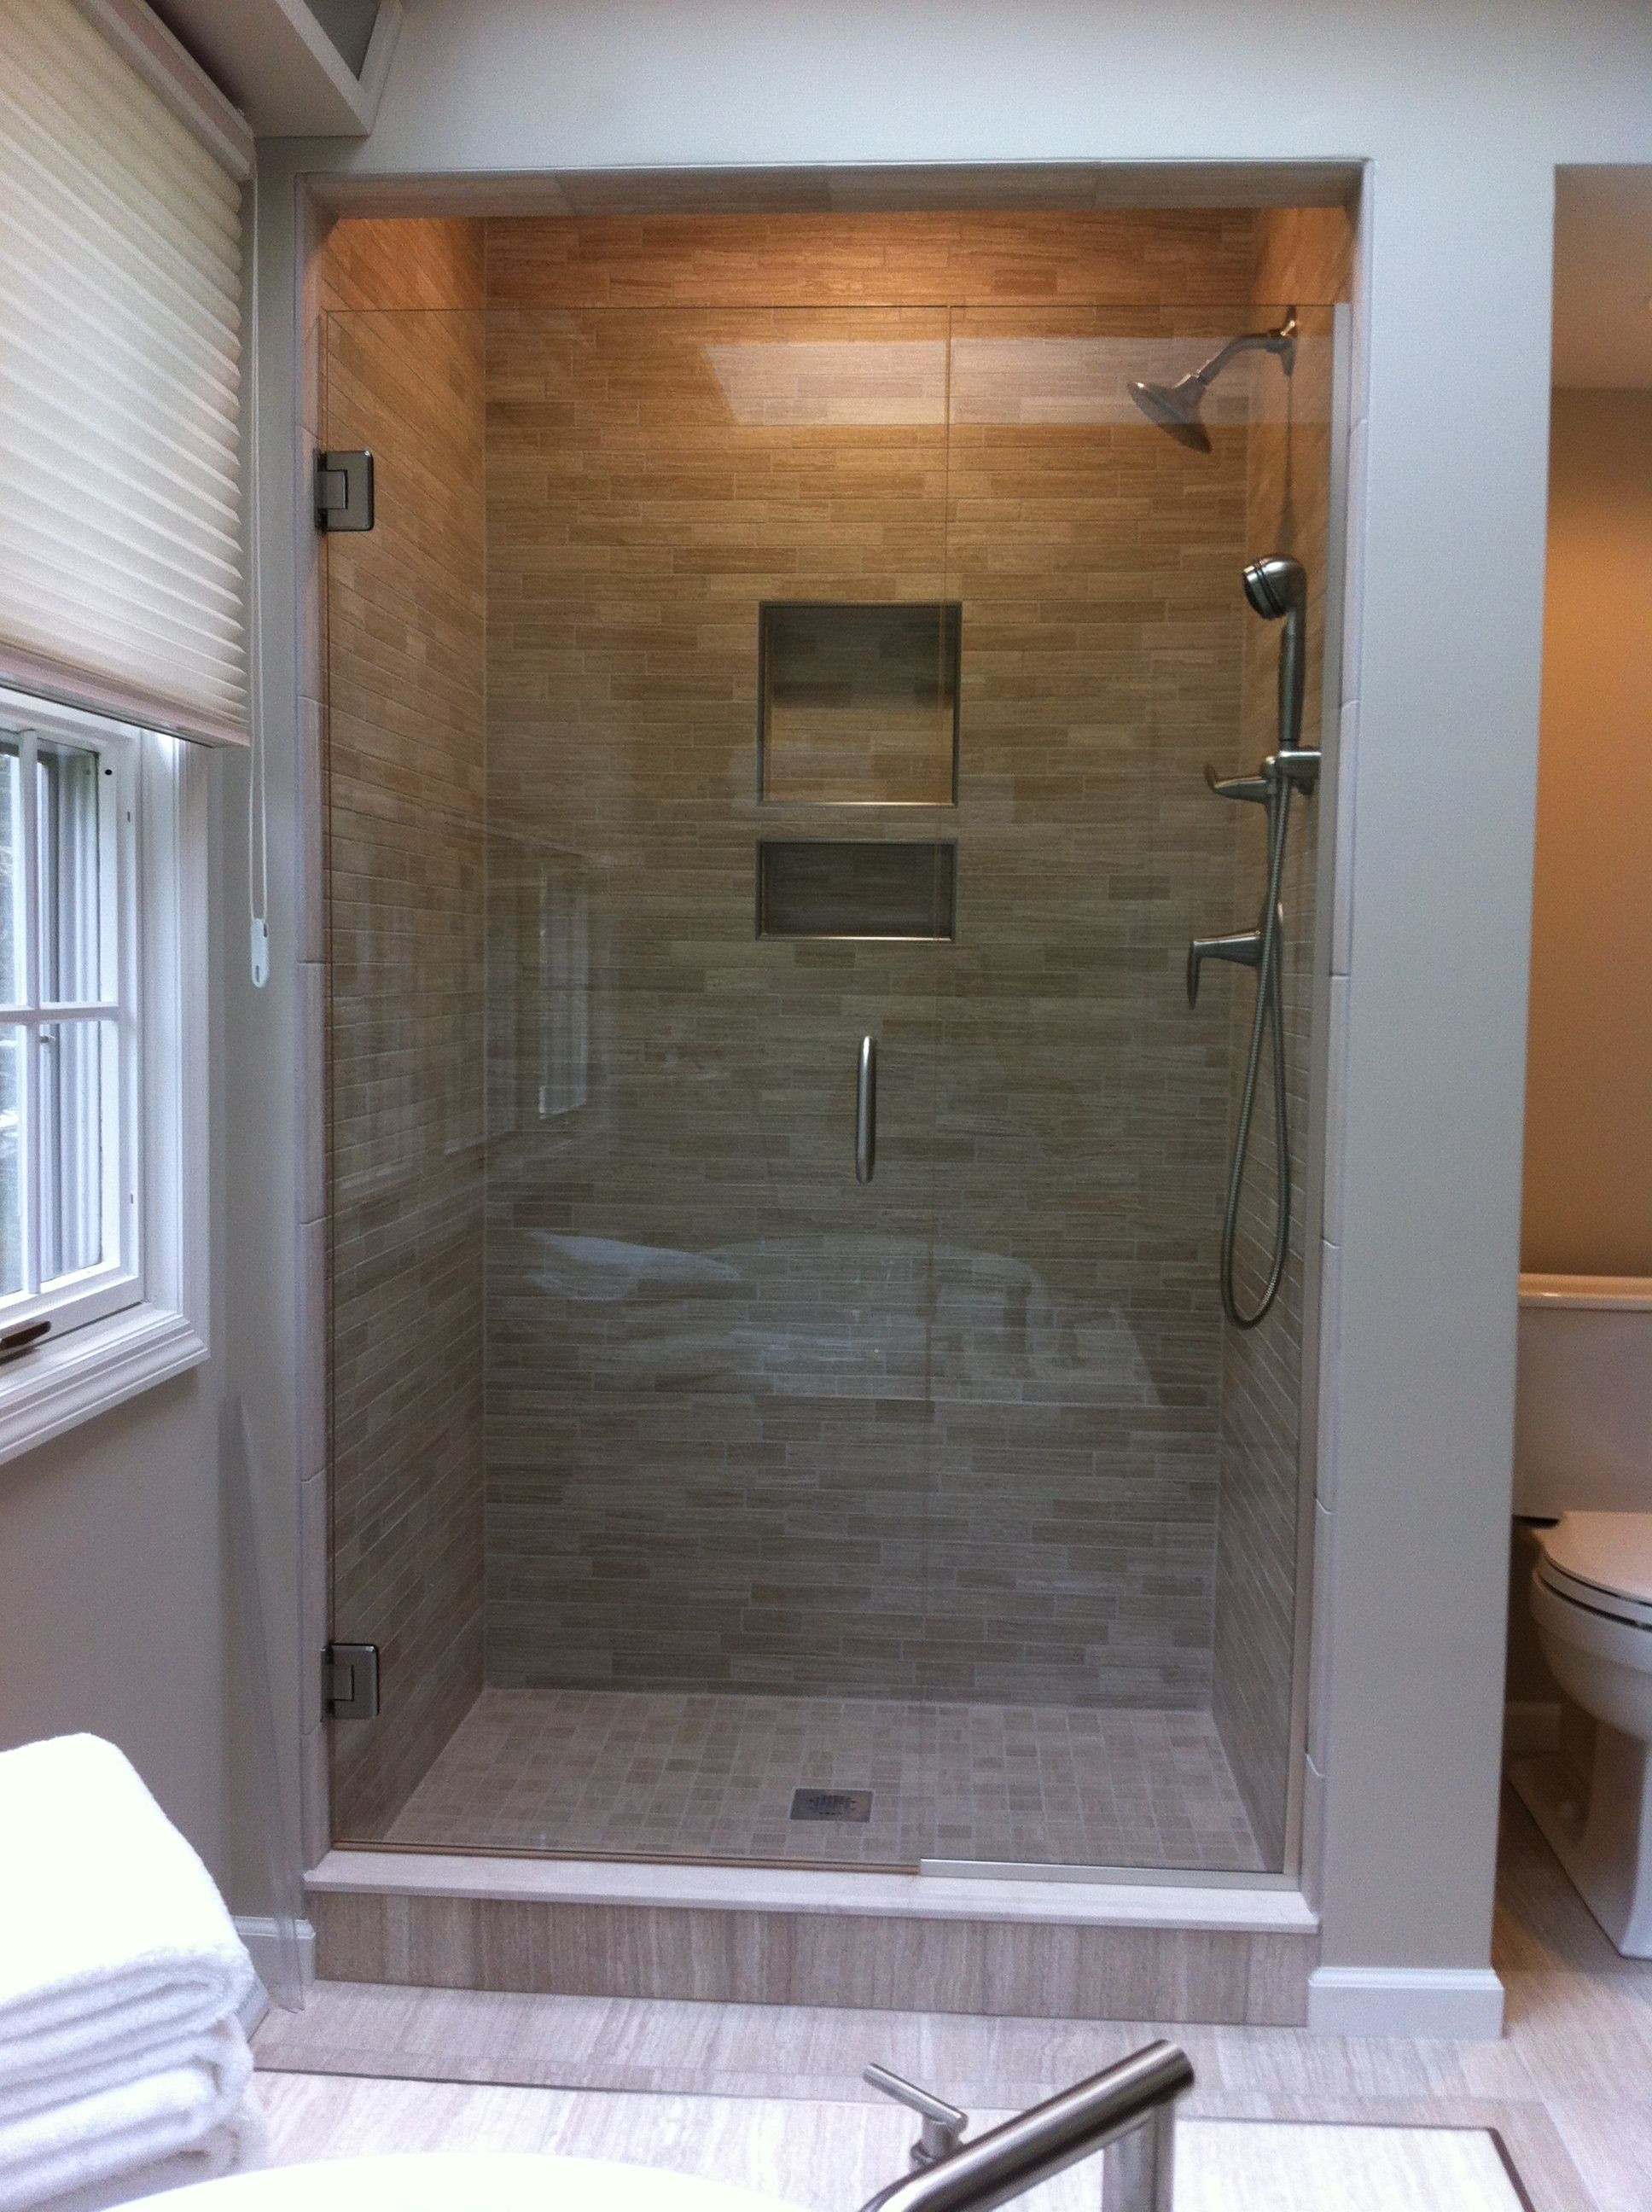 Remodeled And Updated Shower With Porcelain Mosaic Tile, Recessed Niche,  Kohler Mastershower Fixtures,